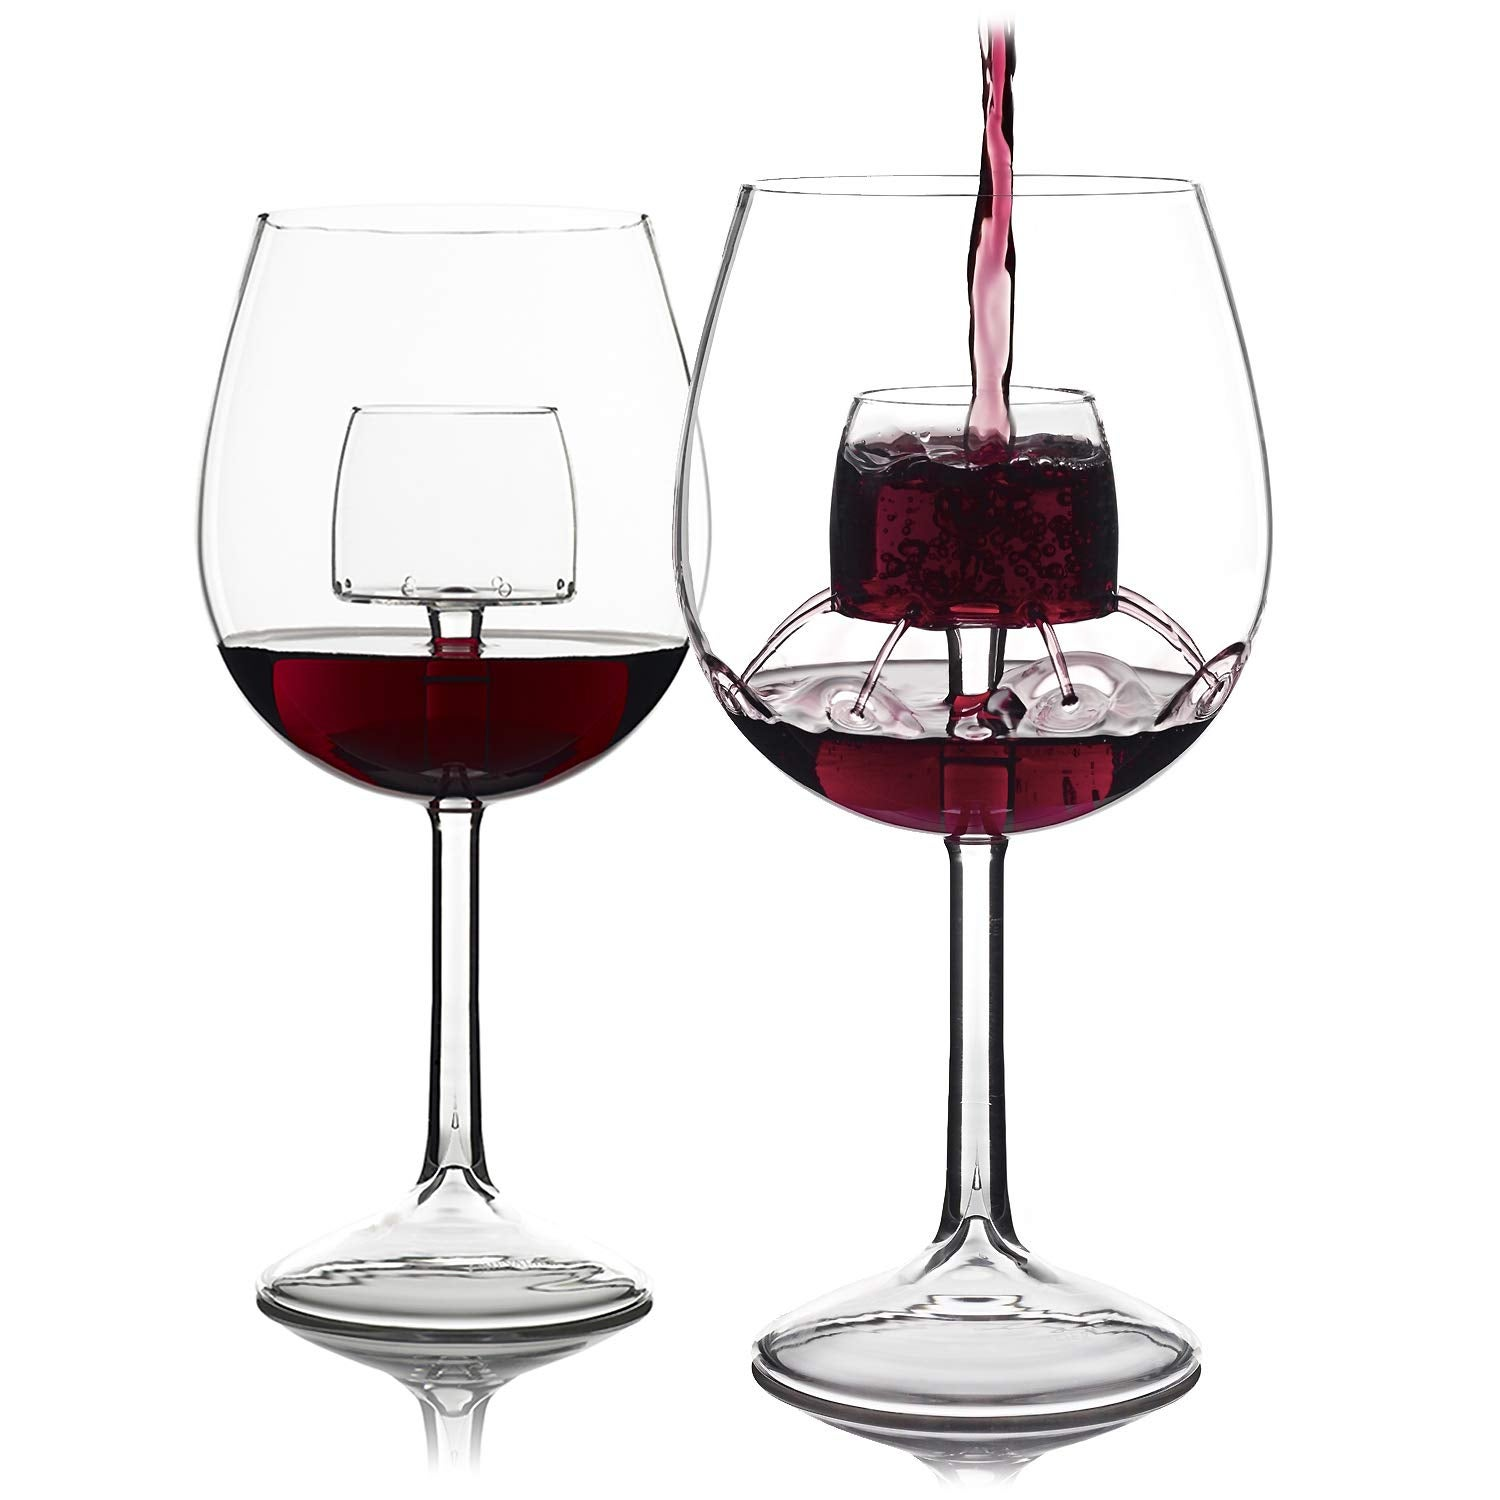 Sommelier Aerating Wine Glasses by Chevalier Collection (Set of 2) - Wine Glass With Built In Aerator